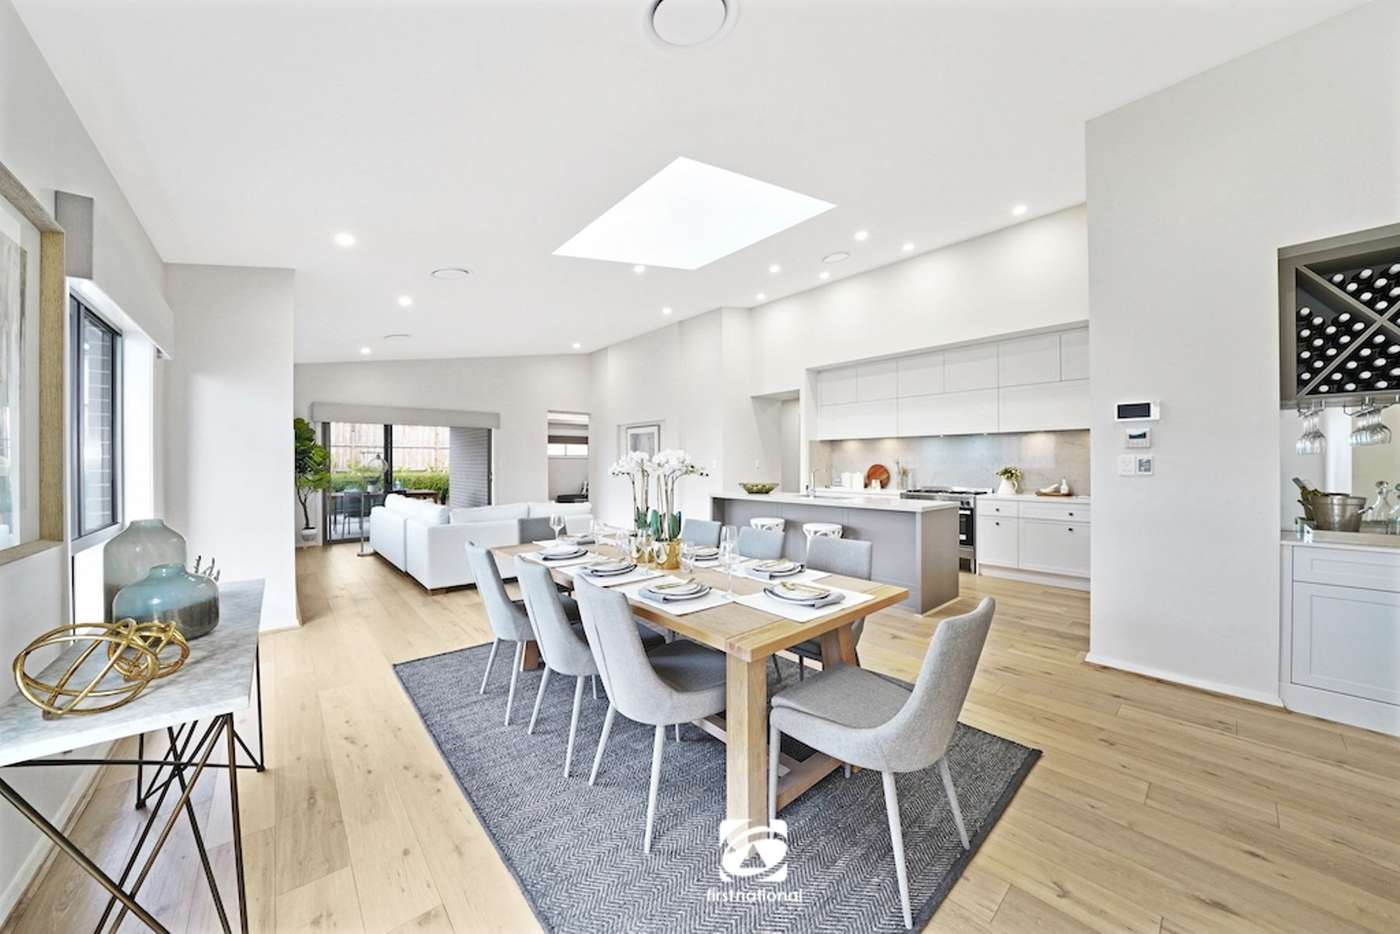 Main view of Homely house listing, 48 Webber Loop, Oran Park, NSW 2570